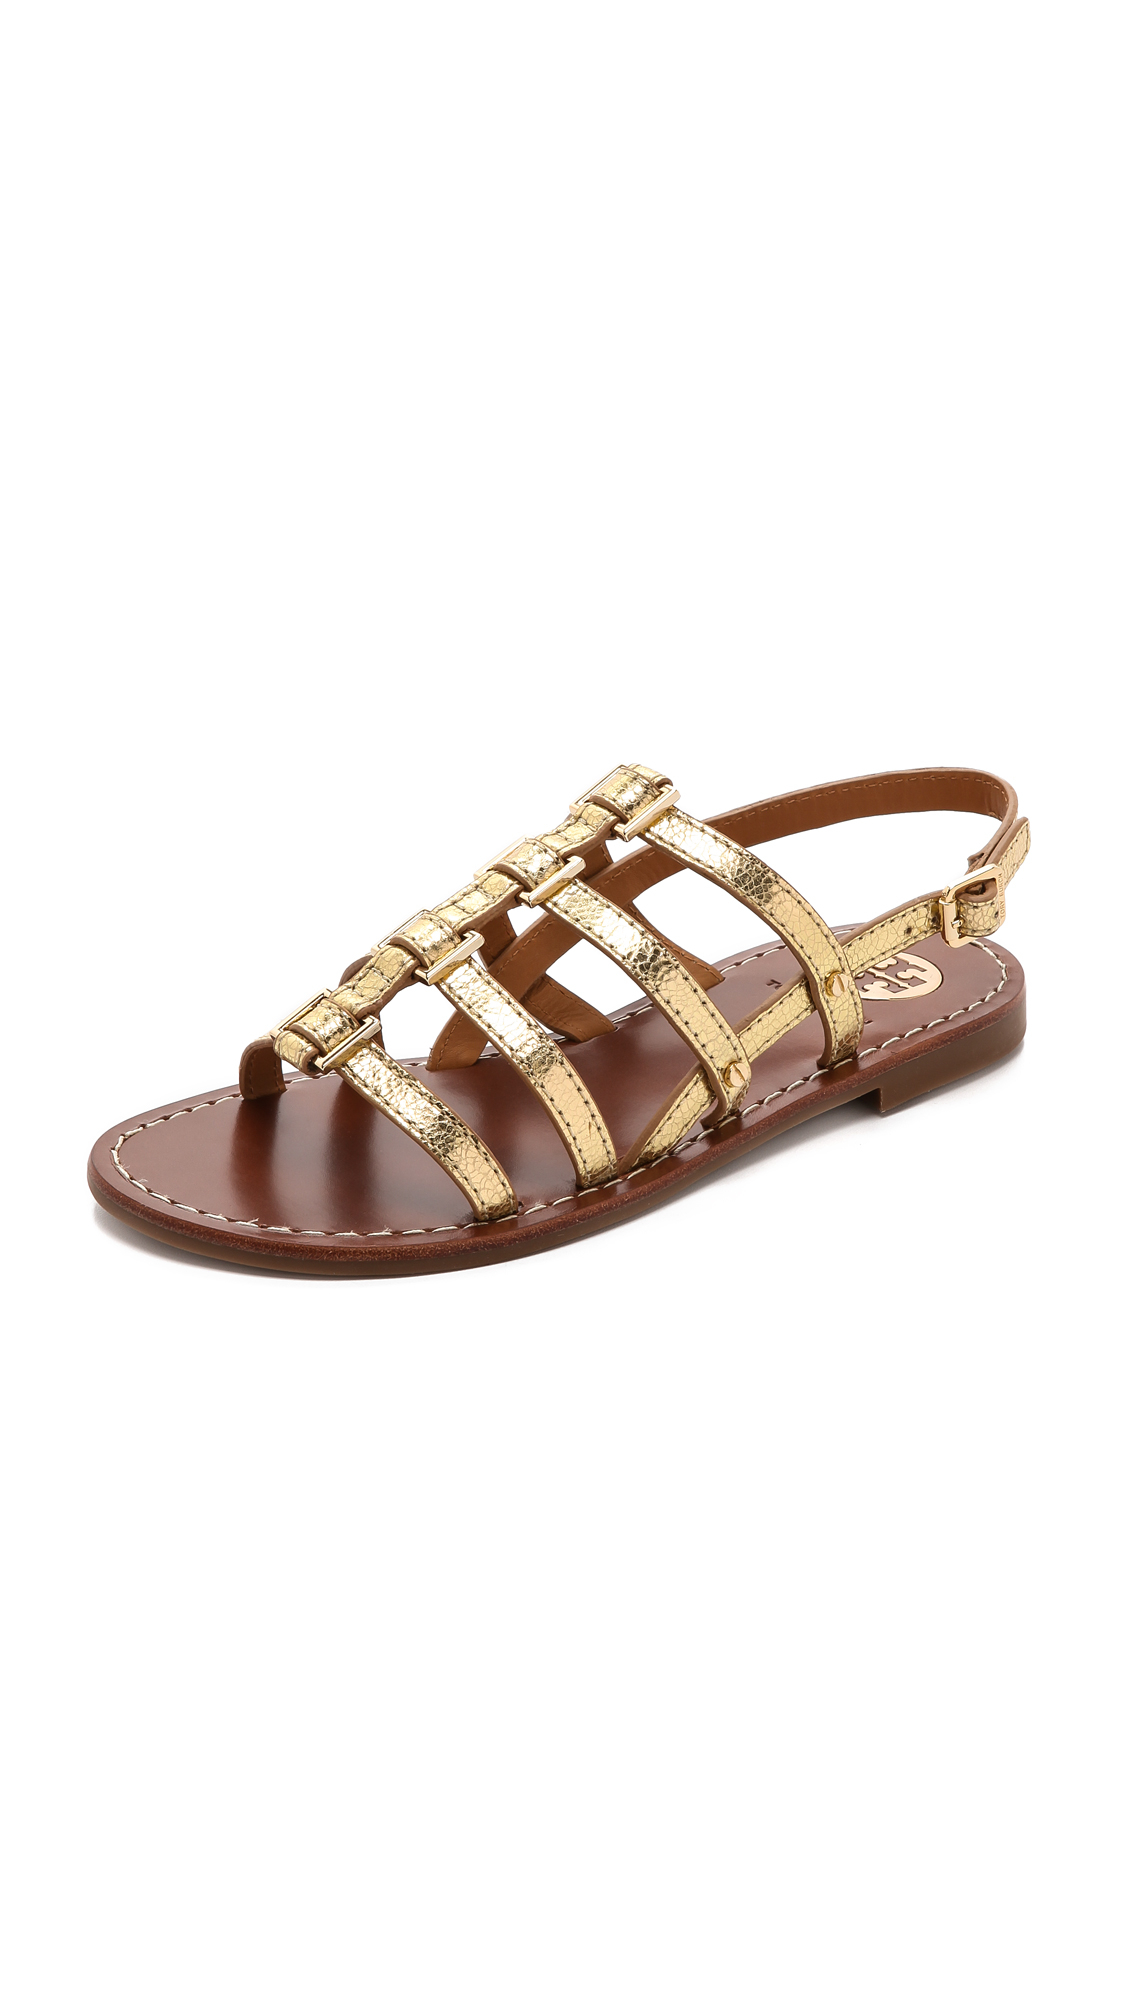 tory burch reggie flat sandals gold in metallic lyst. Black Bedroom Furniture Sets. Home Design Ideas